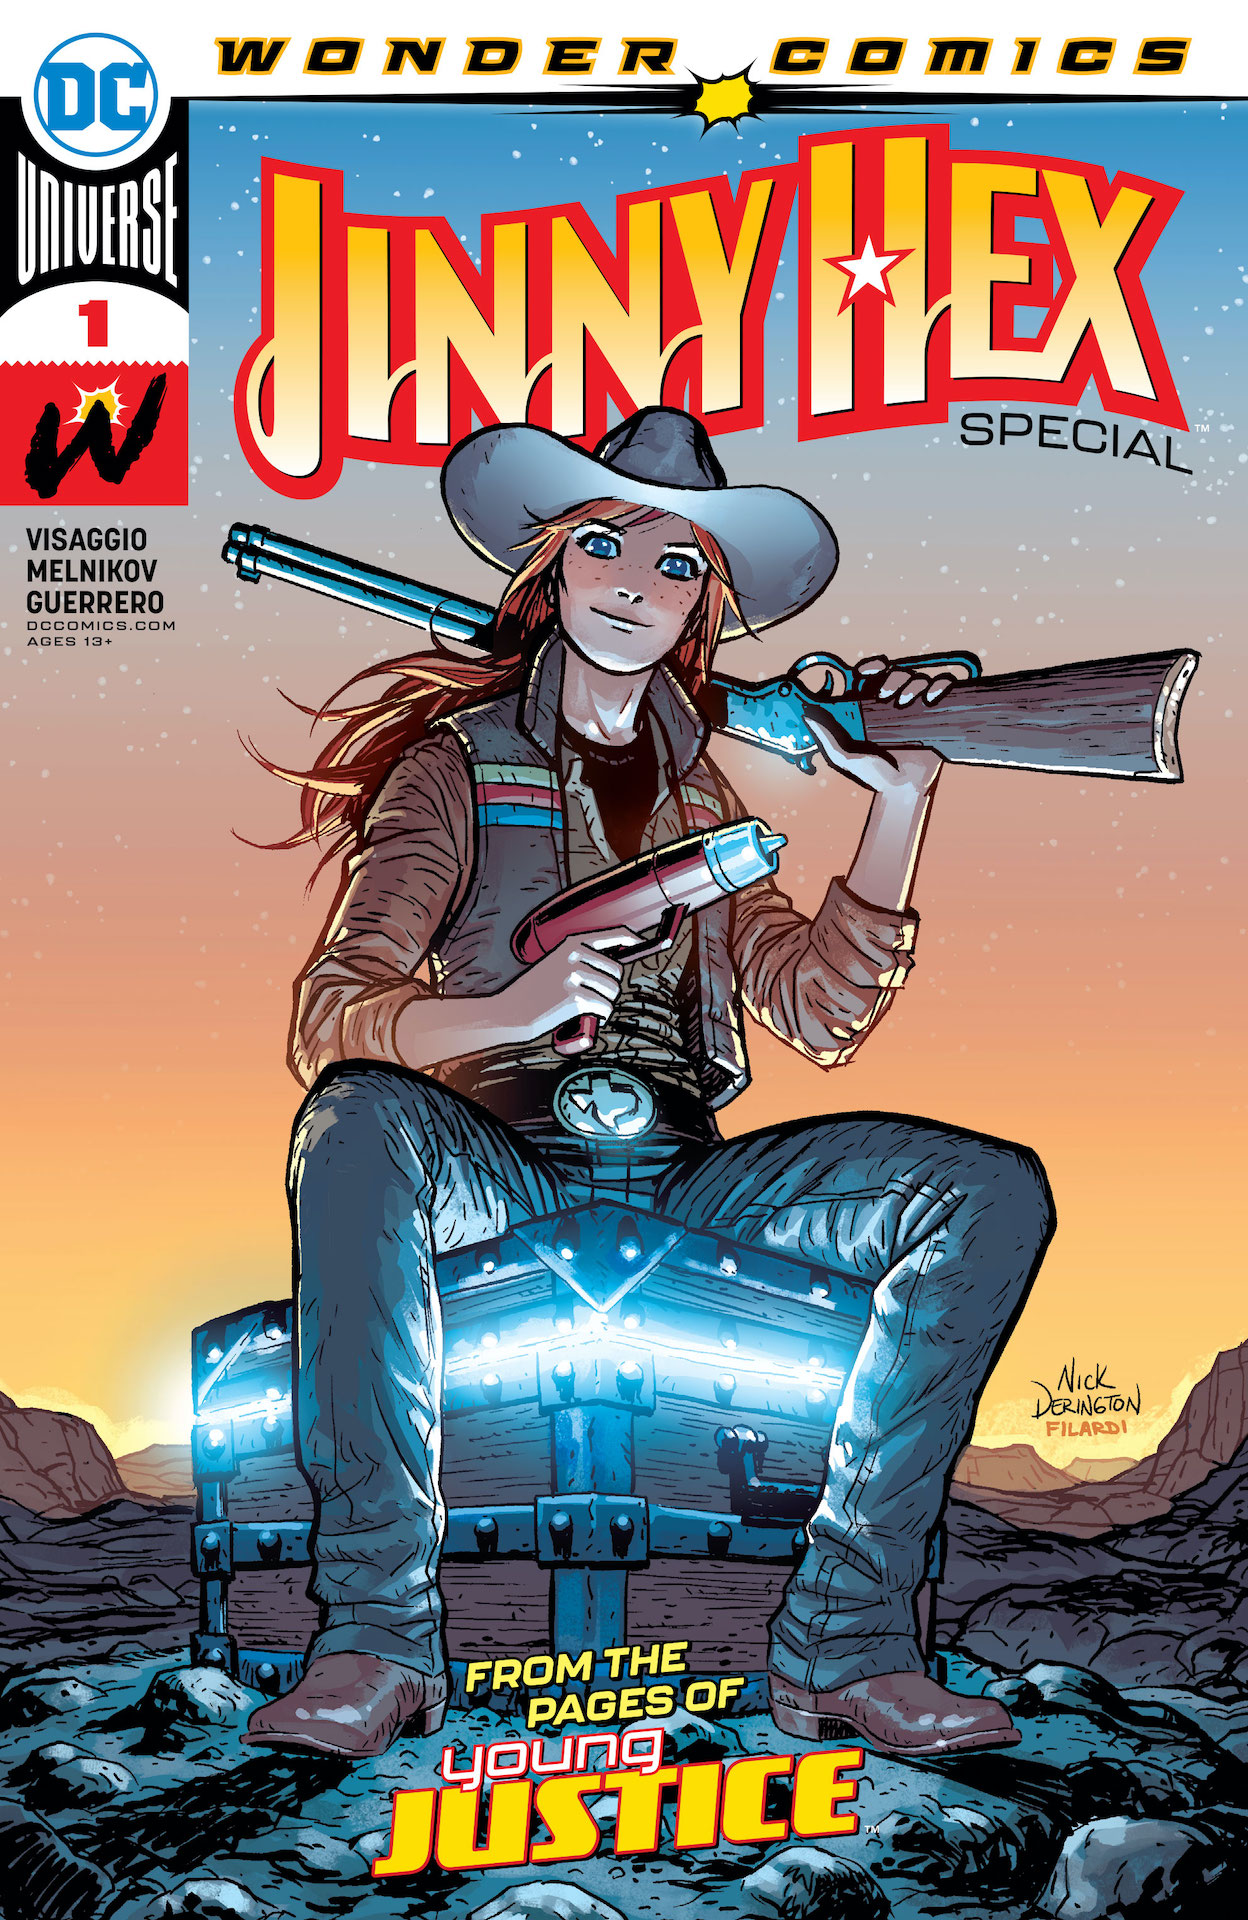 DC Preview: Jinny Hex Special #1